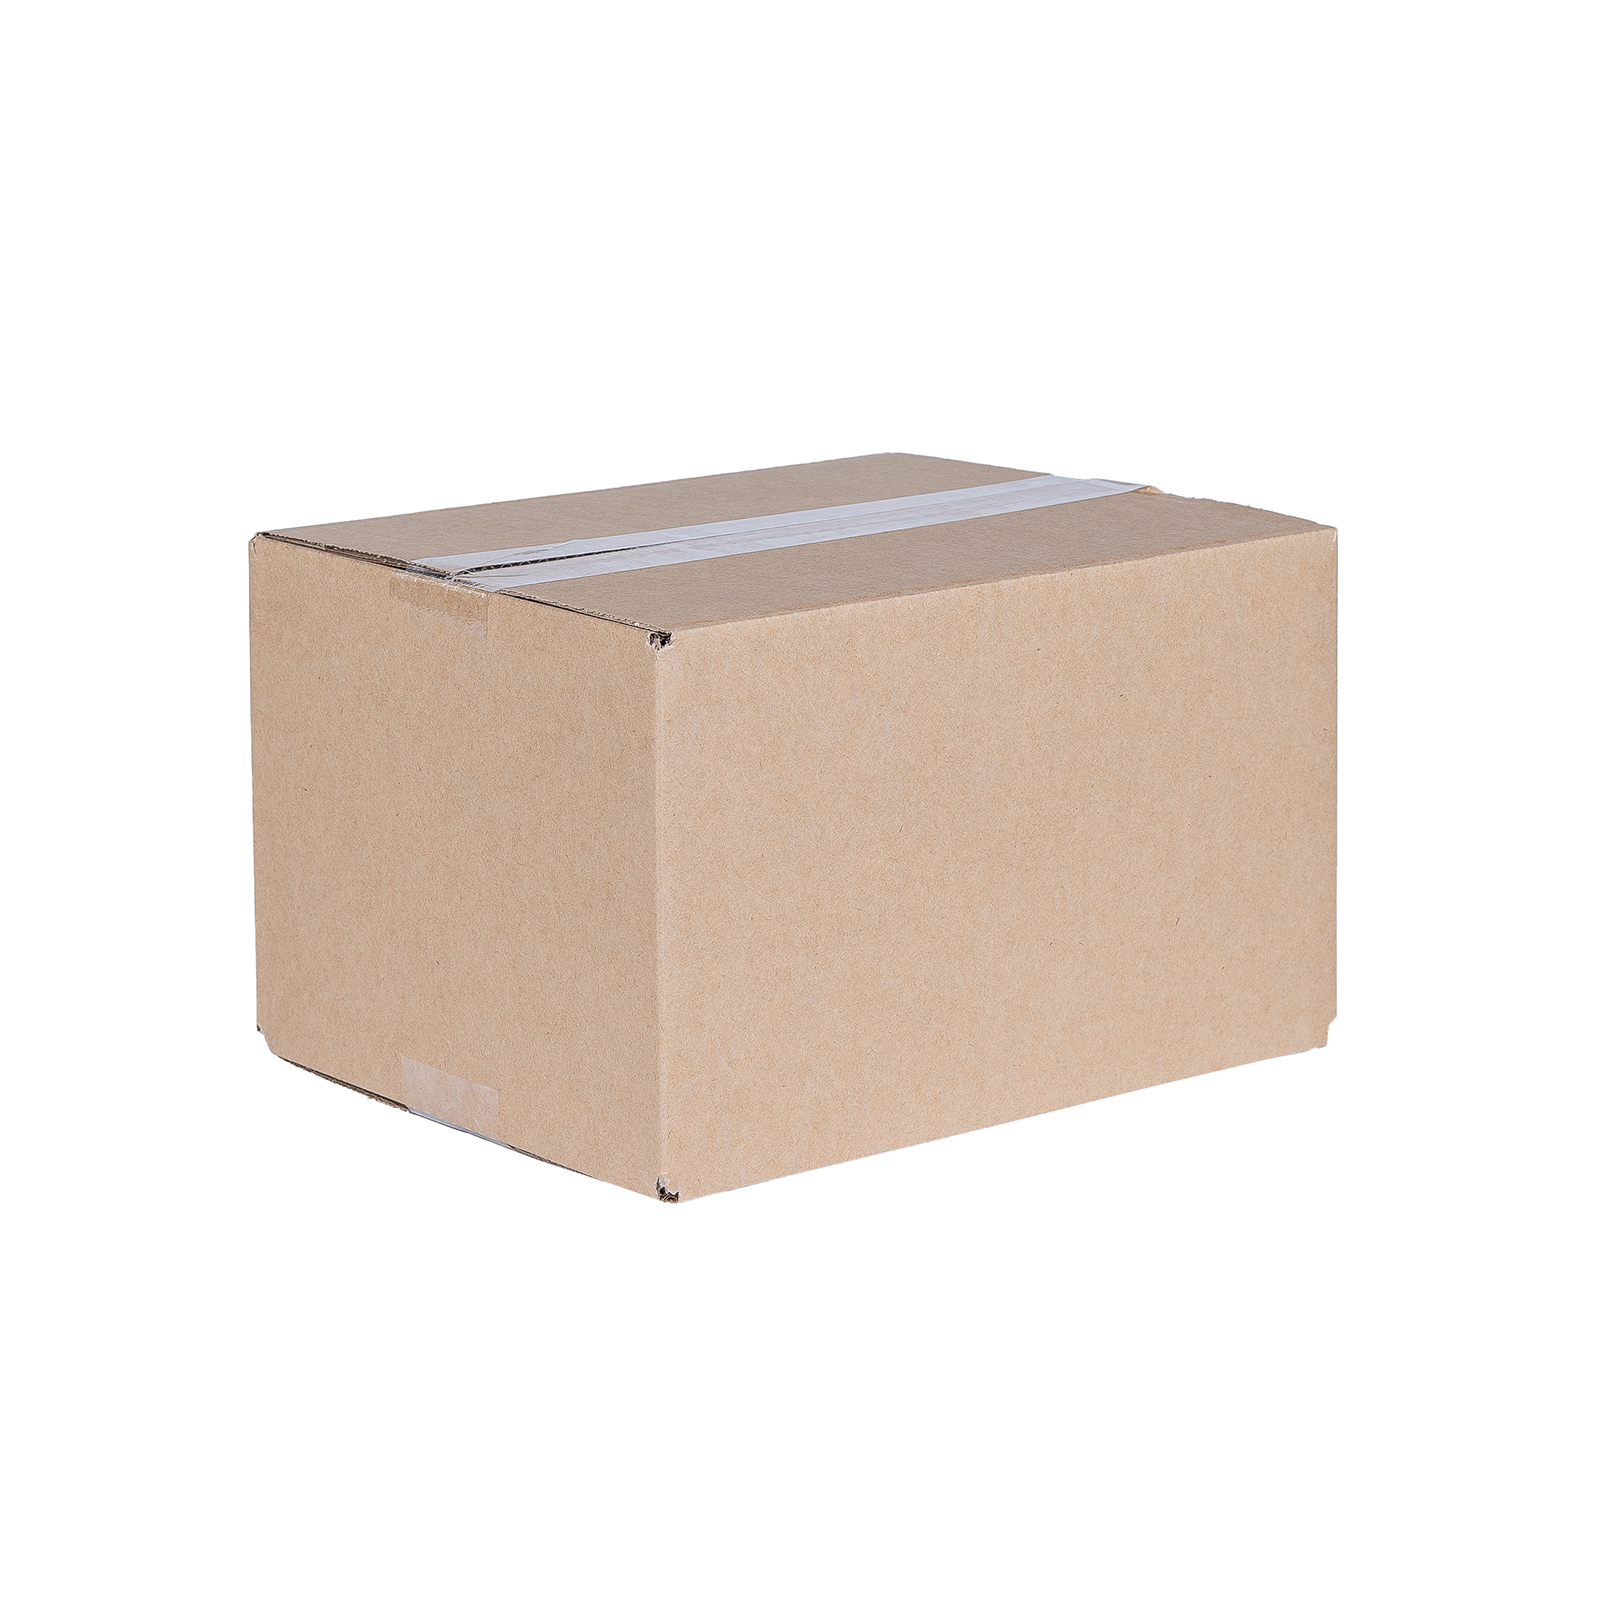 Wrap & Move 250 x 200 x 150mm Packing Box